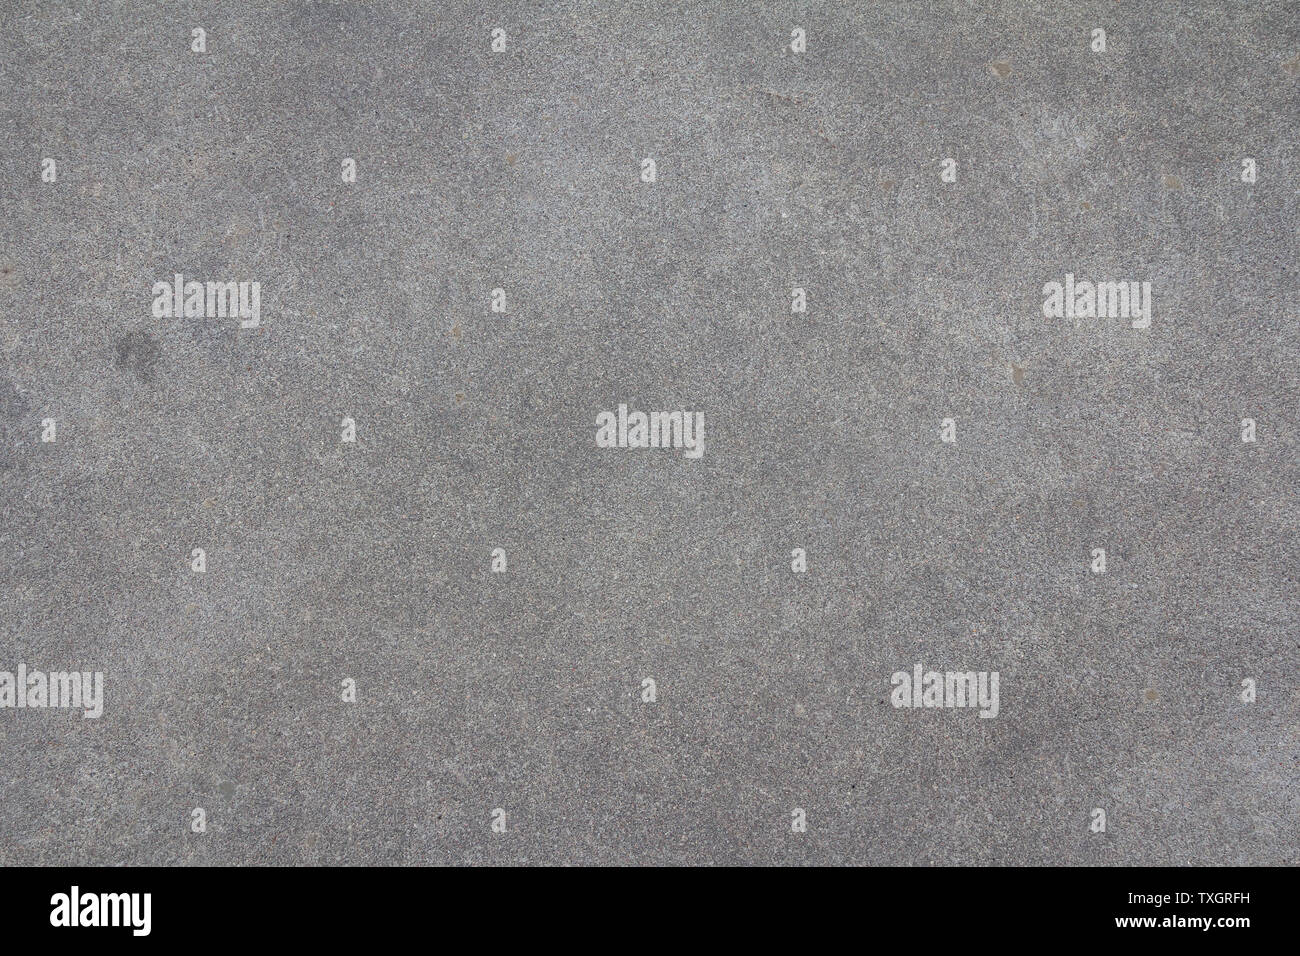 Sanded cement background. Smooth concrete surface. Polished grey stone texture. - Stock Image